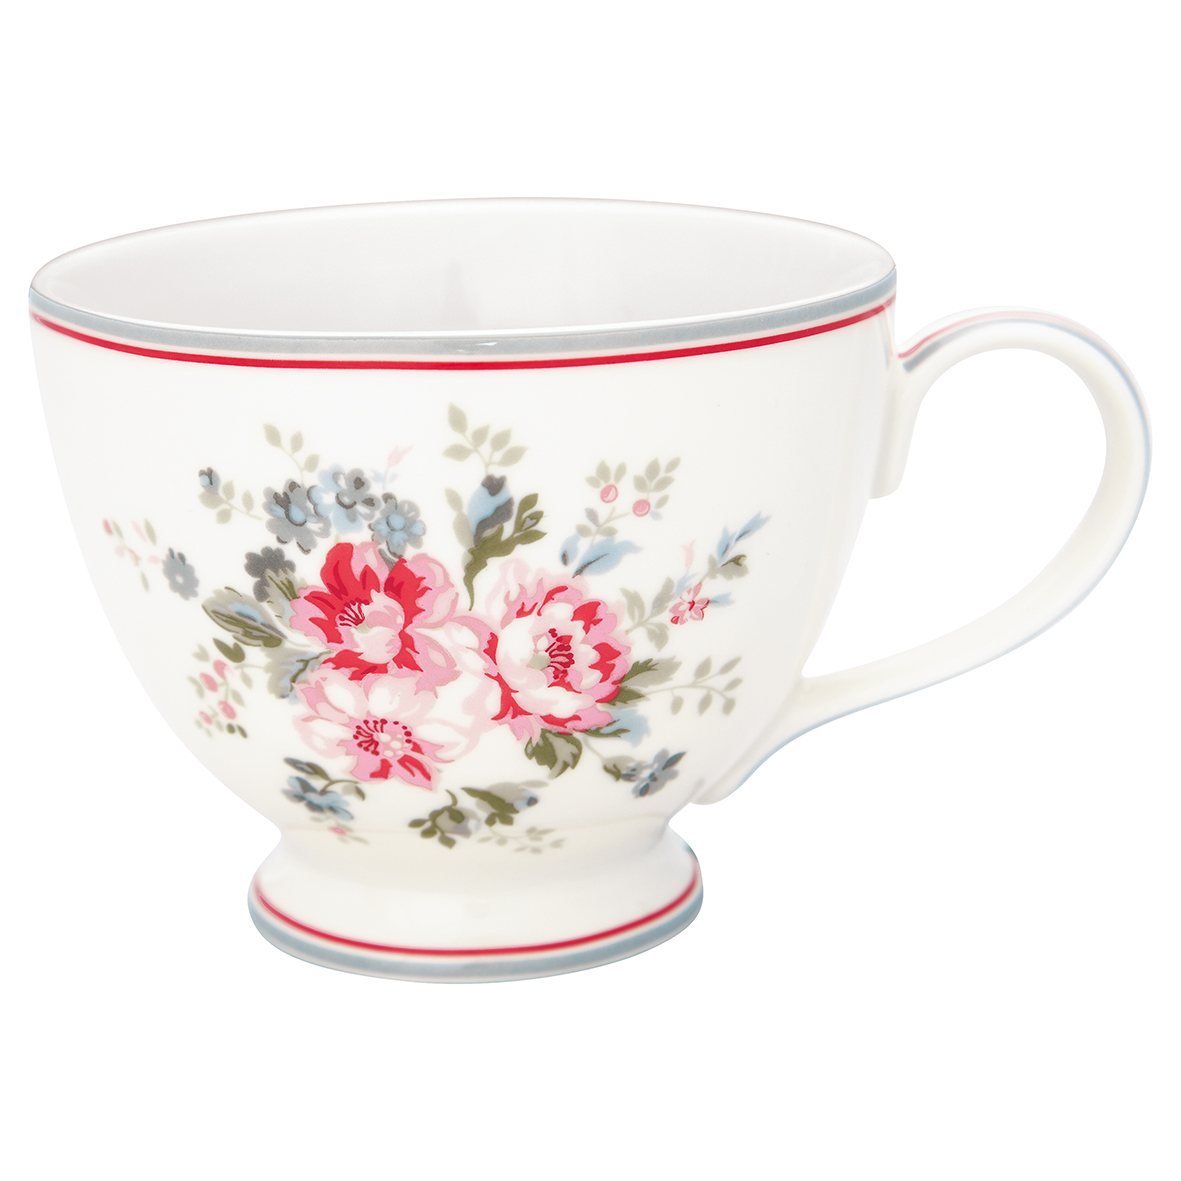 Greengate Teacup Elouise white Becher